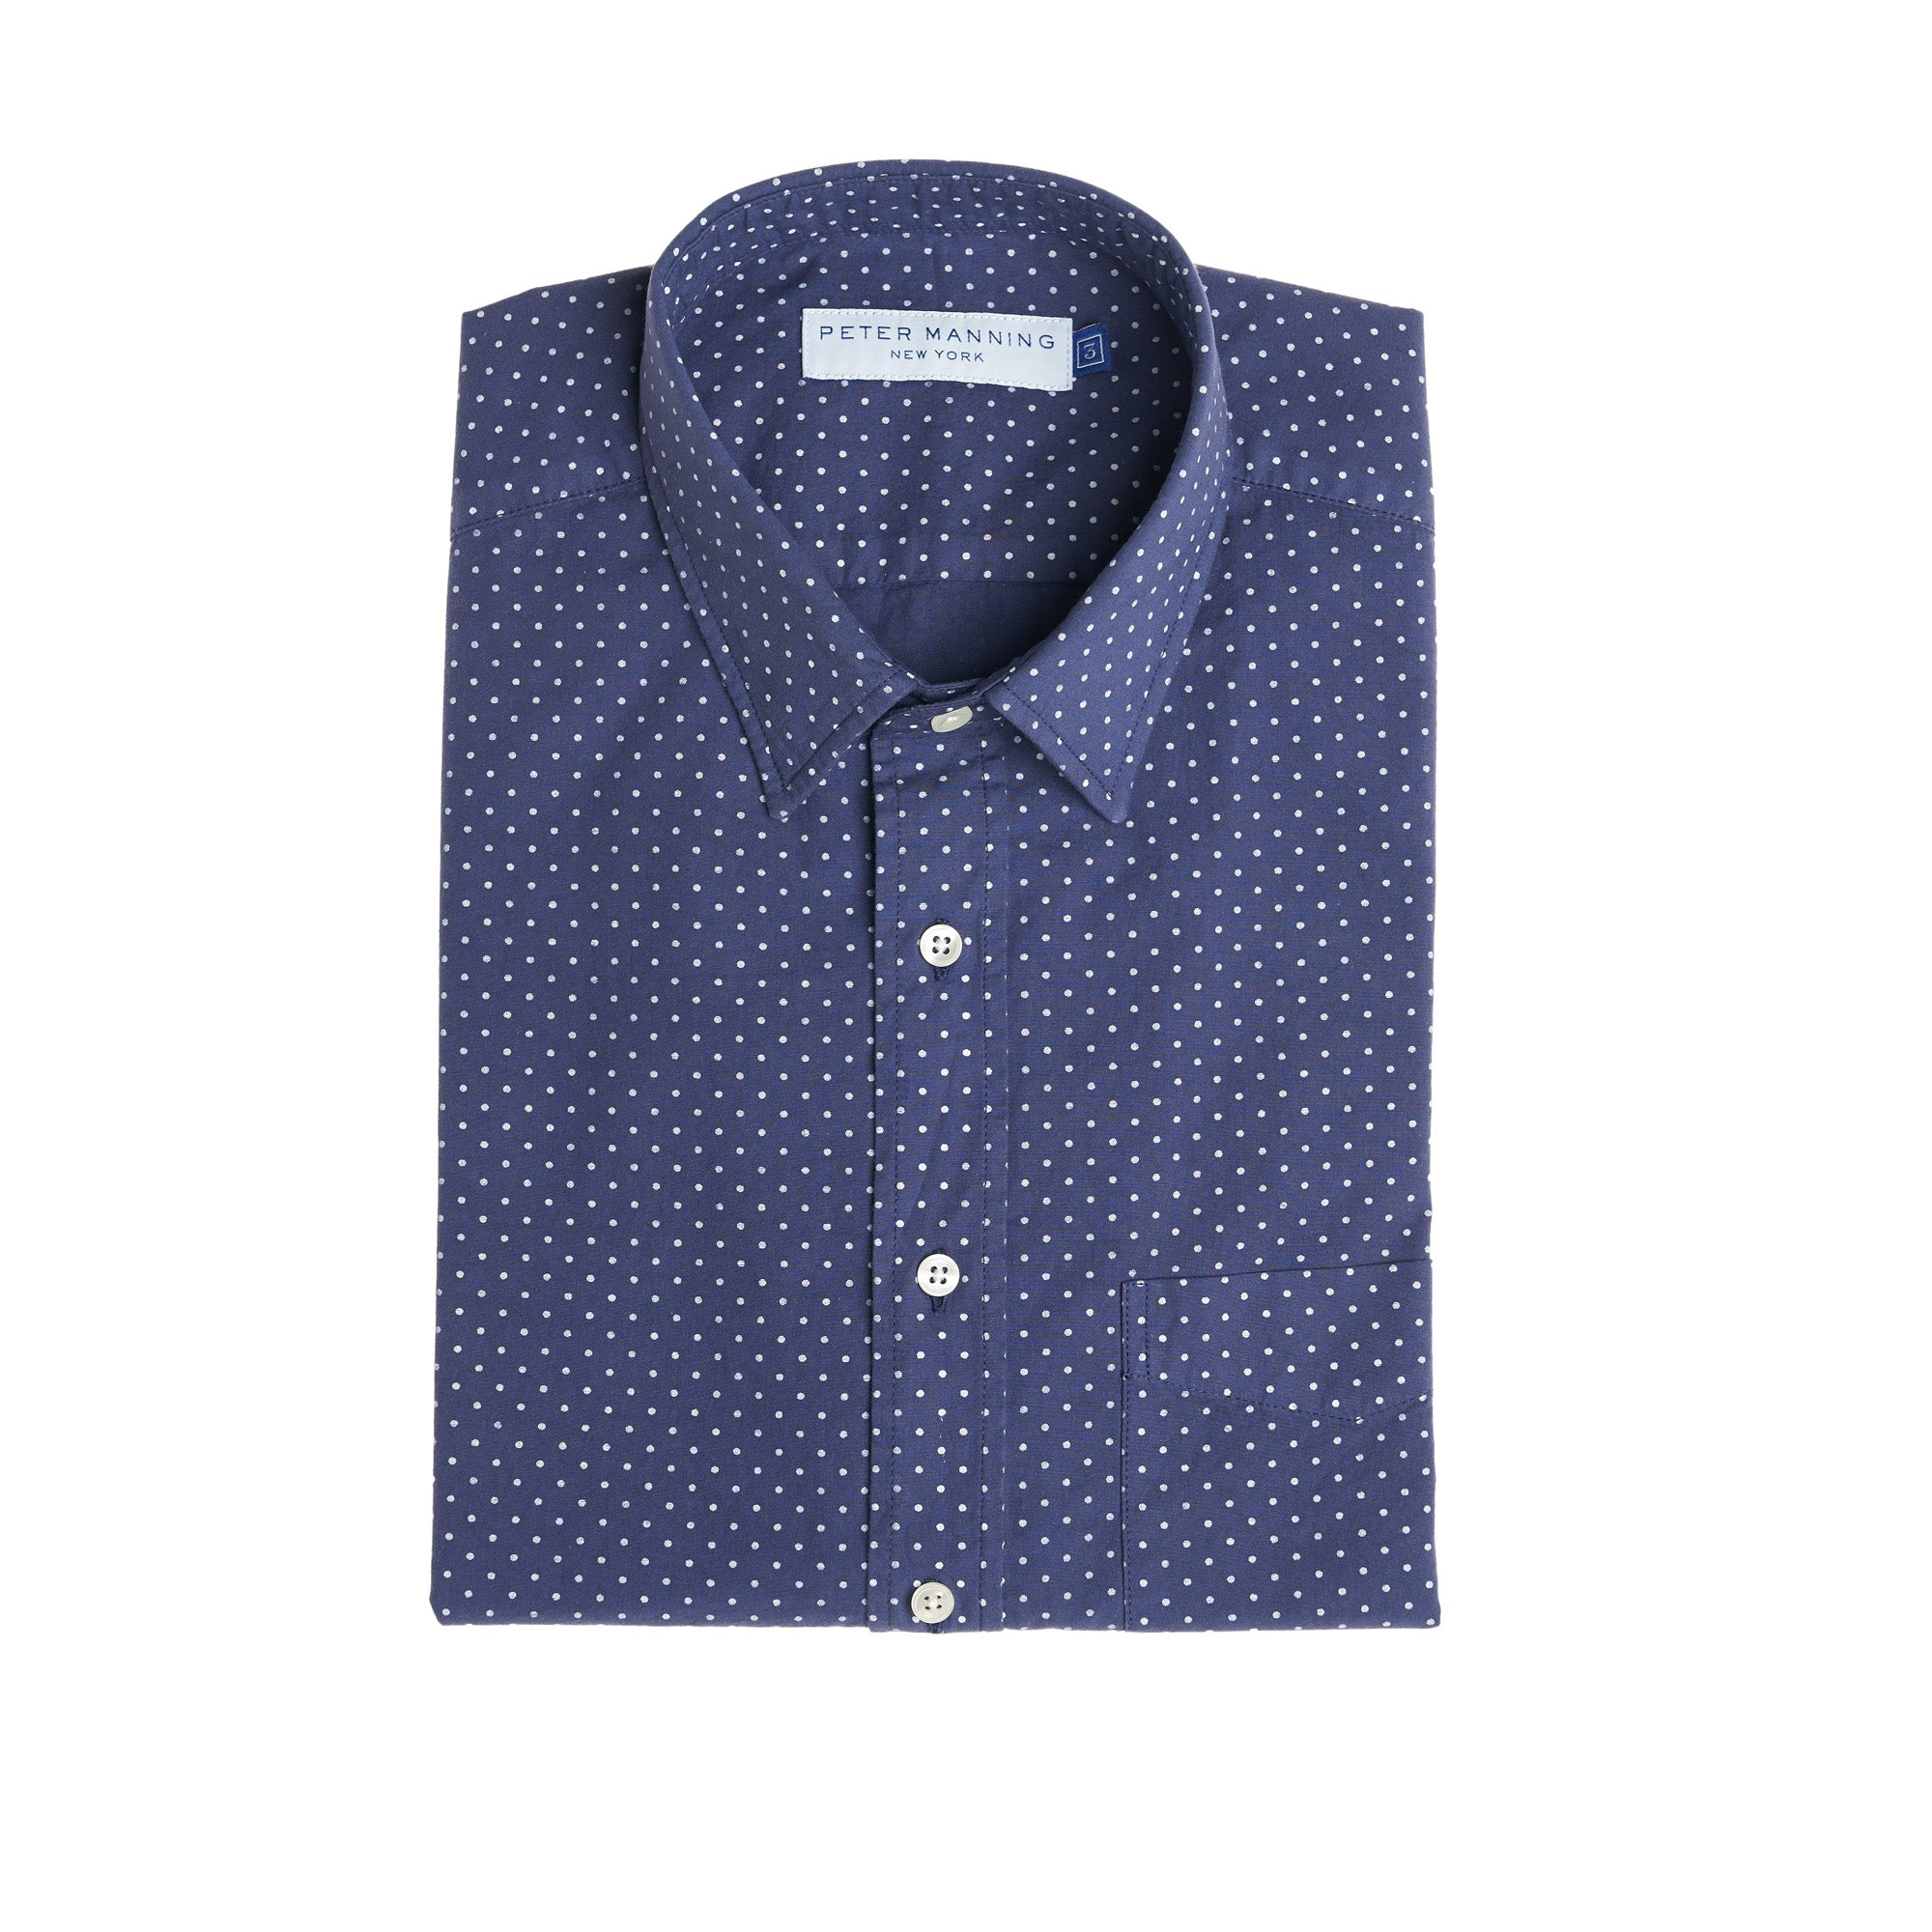 Weekend Printed Shirts - Navy Pindot